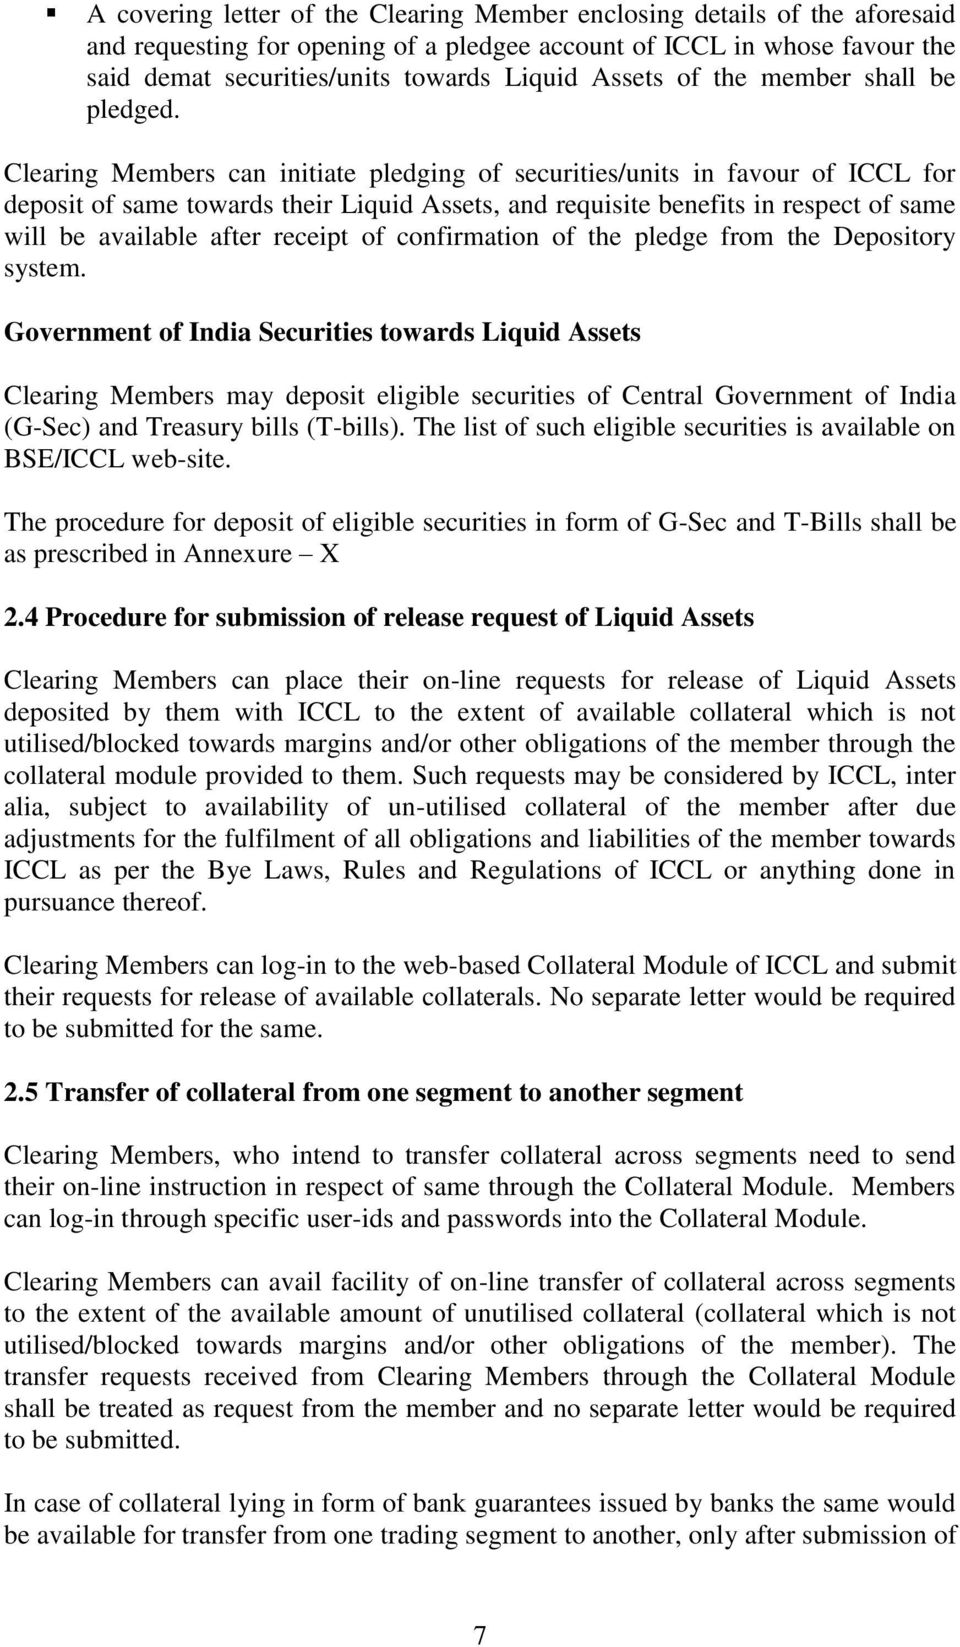 Clearing Members can initiate pledging of securities/units in favour of ICCL for deposit of same towards their Liquid Assets, and requisite benefits in respect of same will be available after receipt